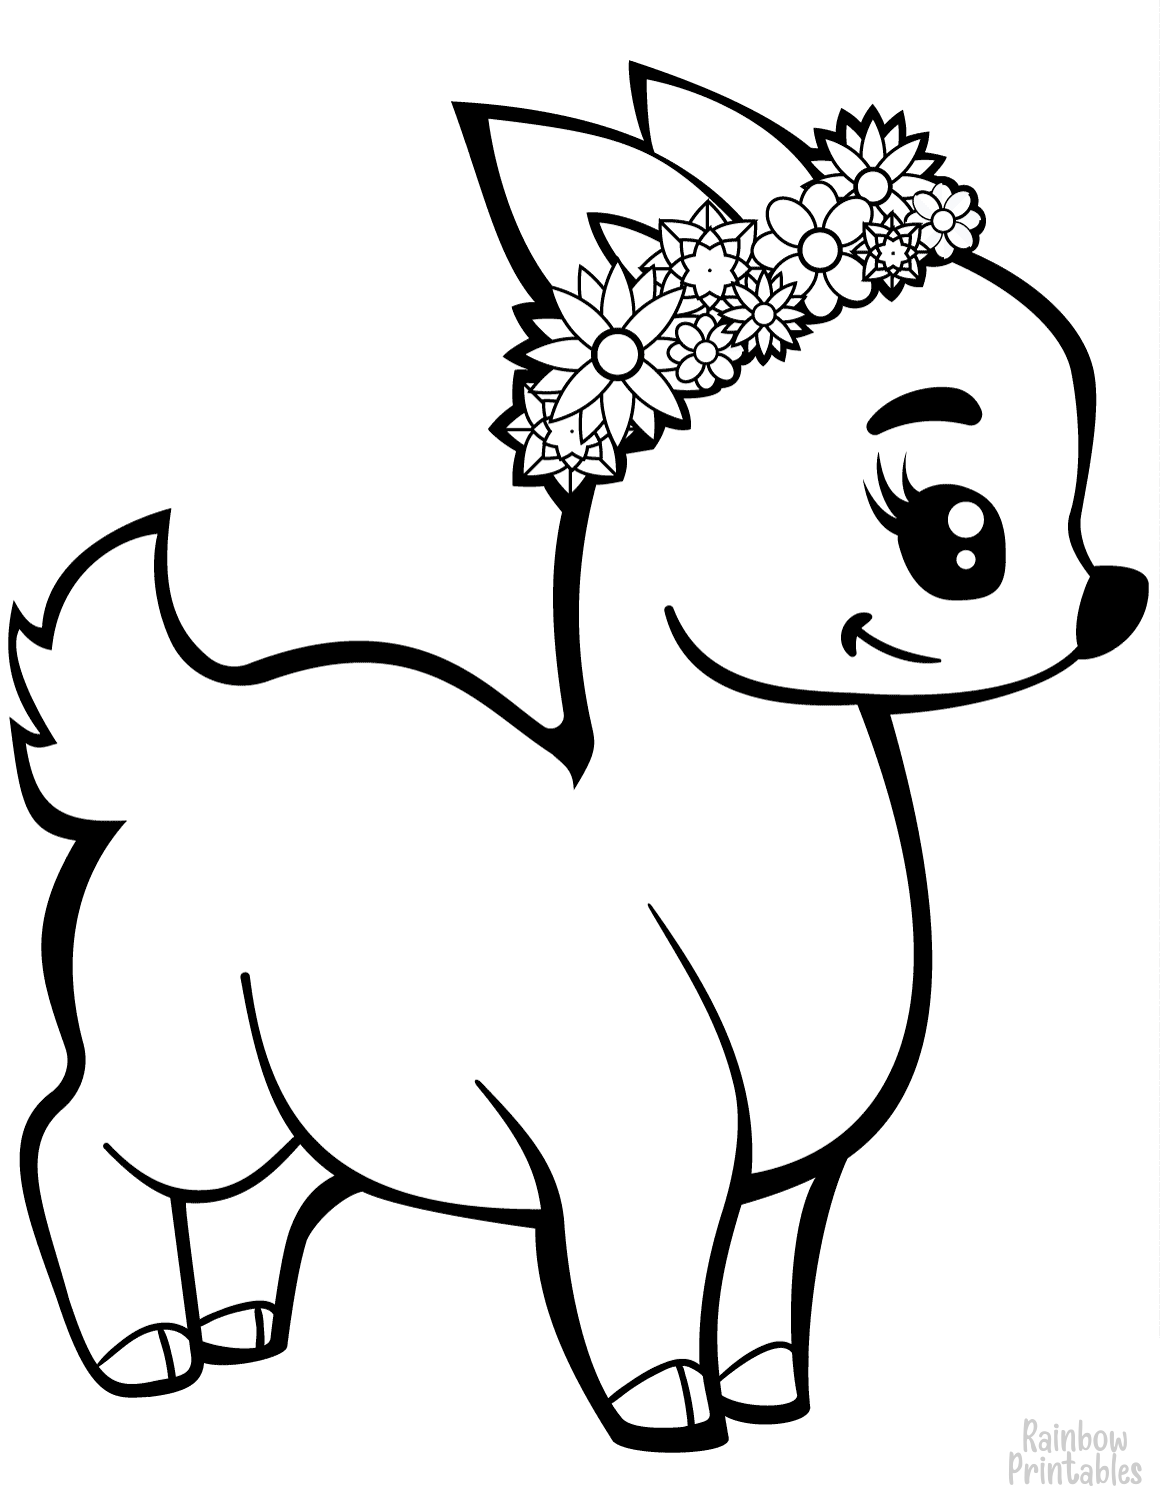 cute flower fawn deer wreath coloring page for girls